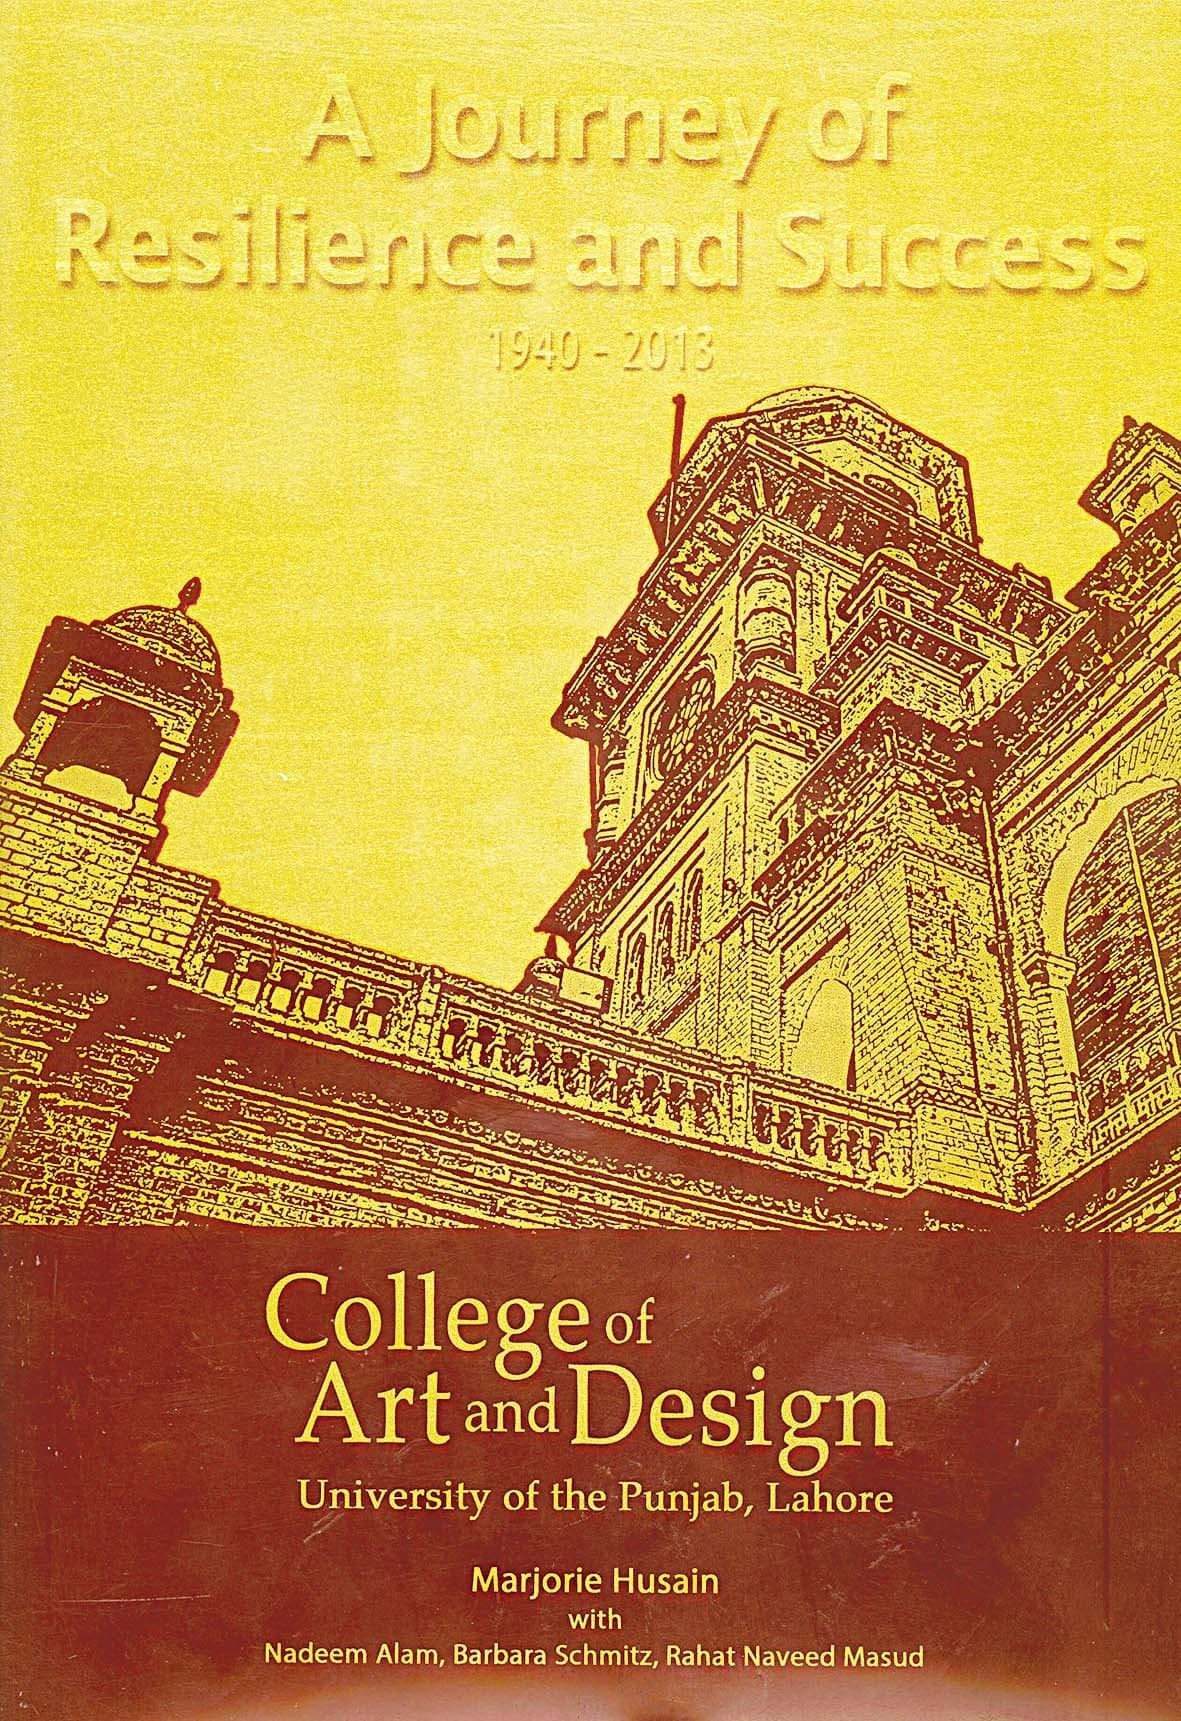 A Journey of Resilience and Success:  College of Art and Design, University  of the Punjab, Lahore  By Marjorie Husain (with Nadeem Alam, Barbara Schmitz, Rahat Naveed Masud)